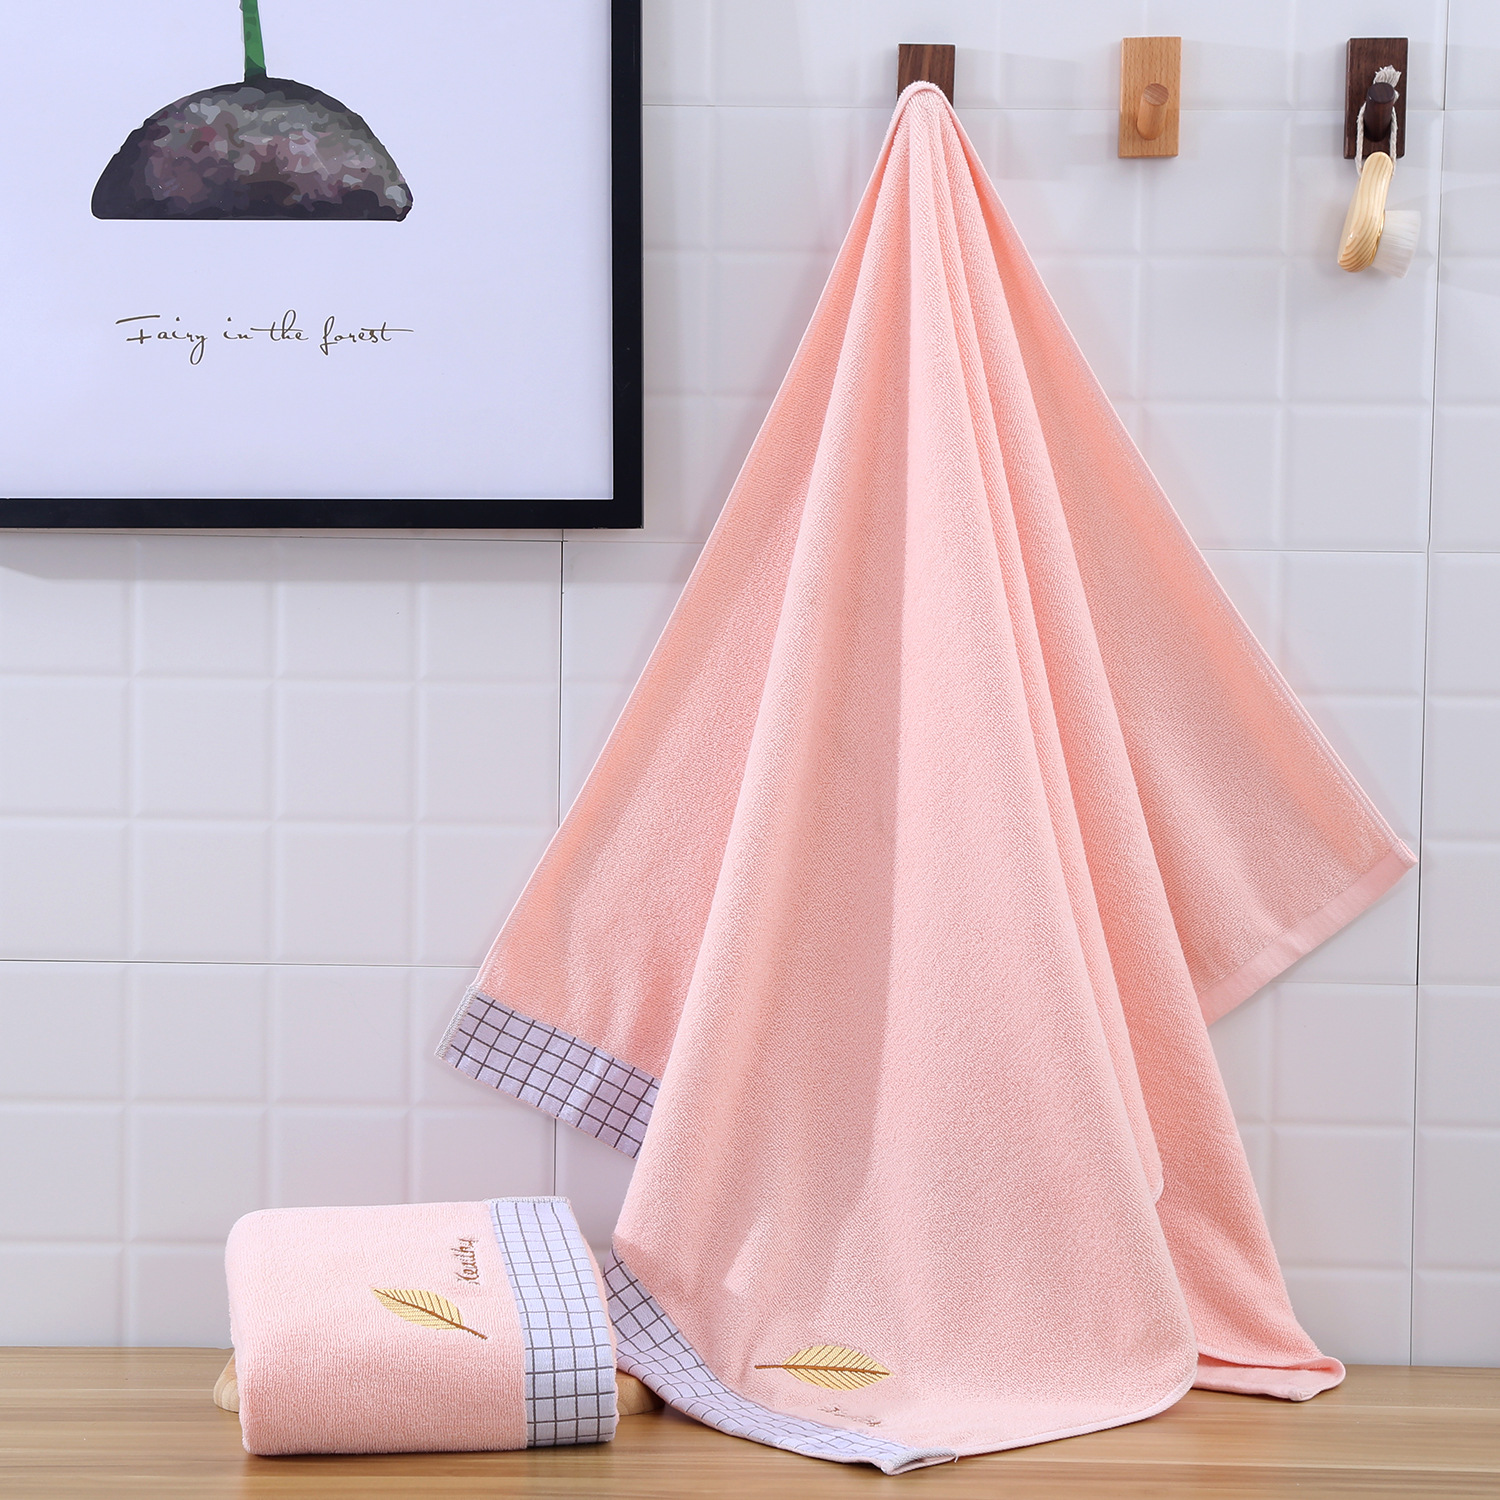 Soft Leaf Embroidered Cotton Towel for Daily Use